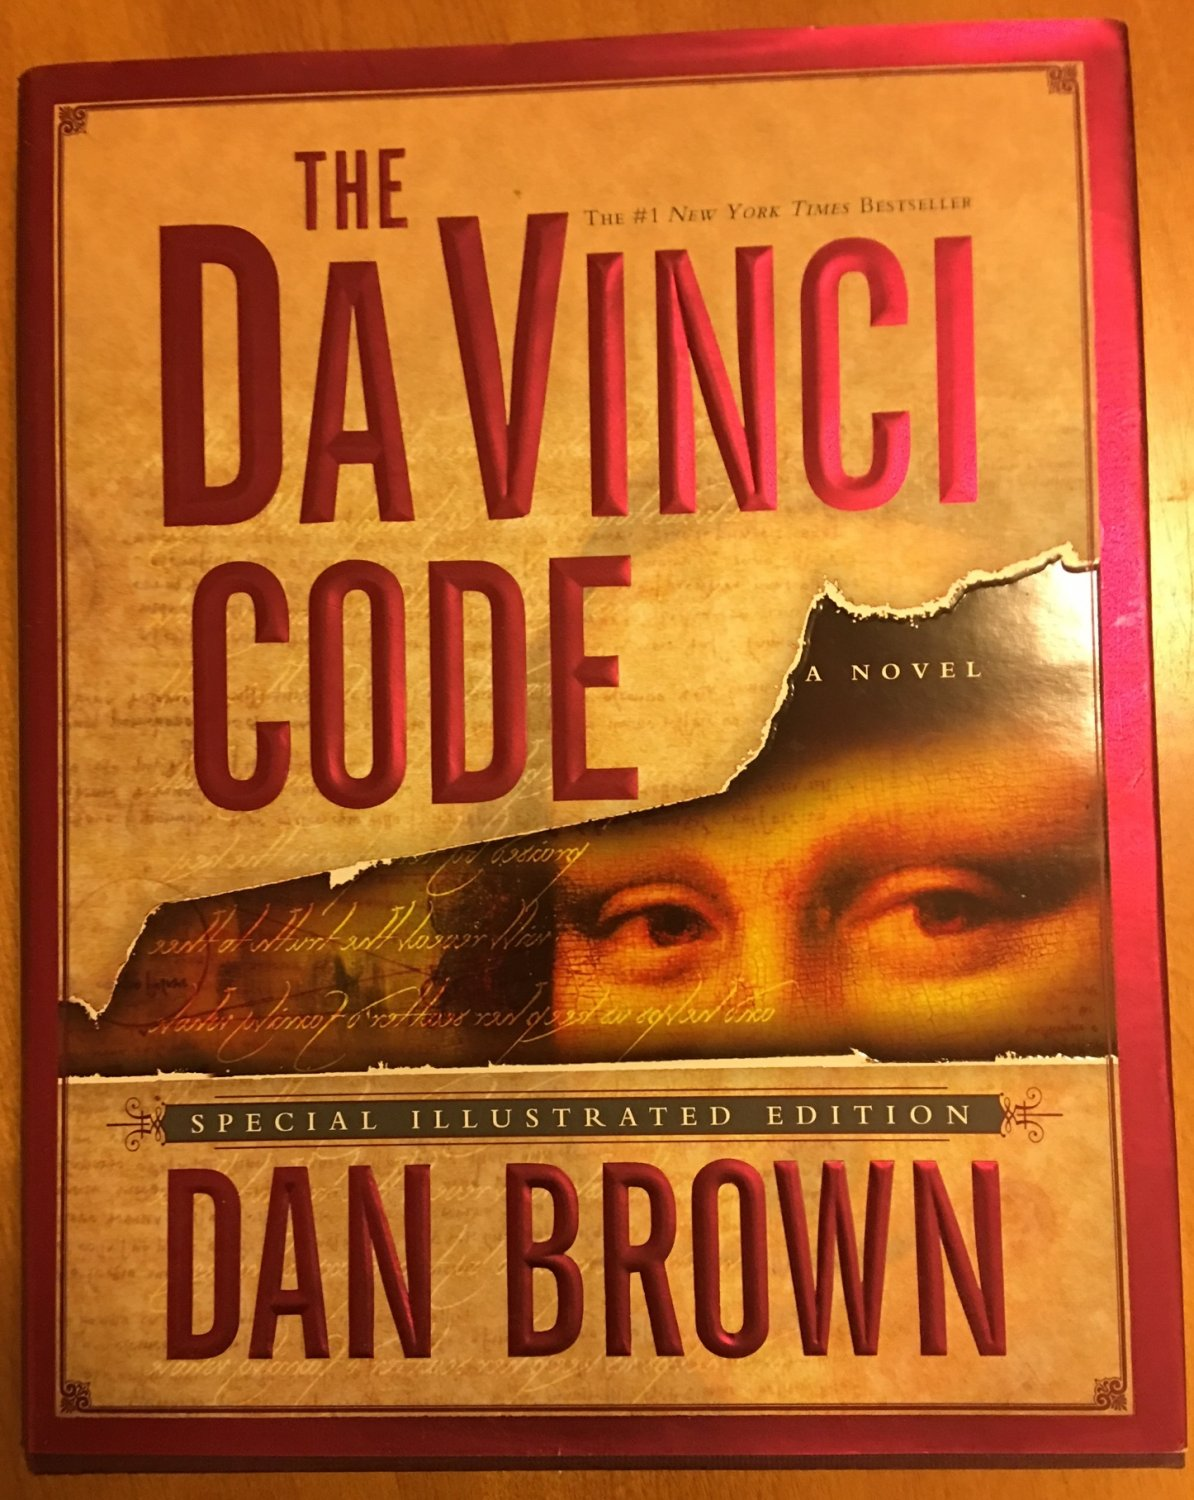 The Da Vinci Code - special illustrated edition